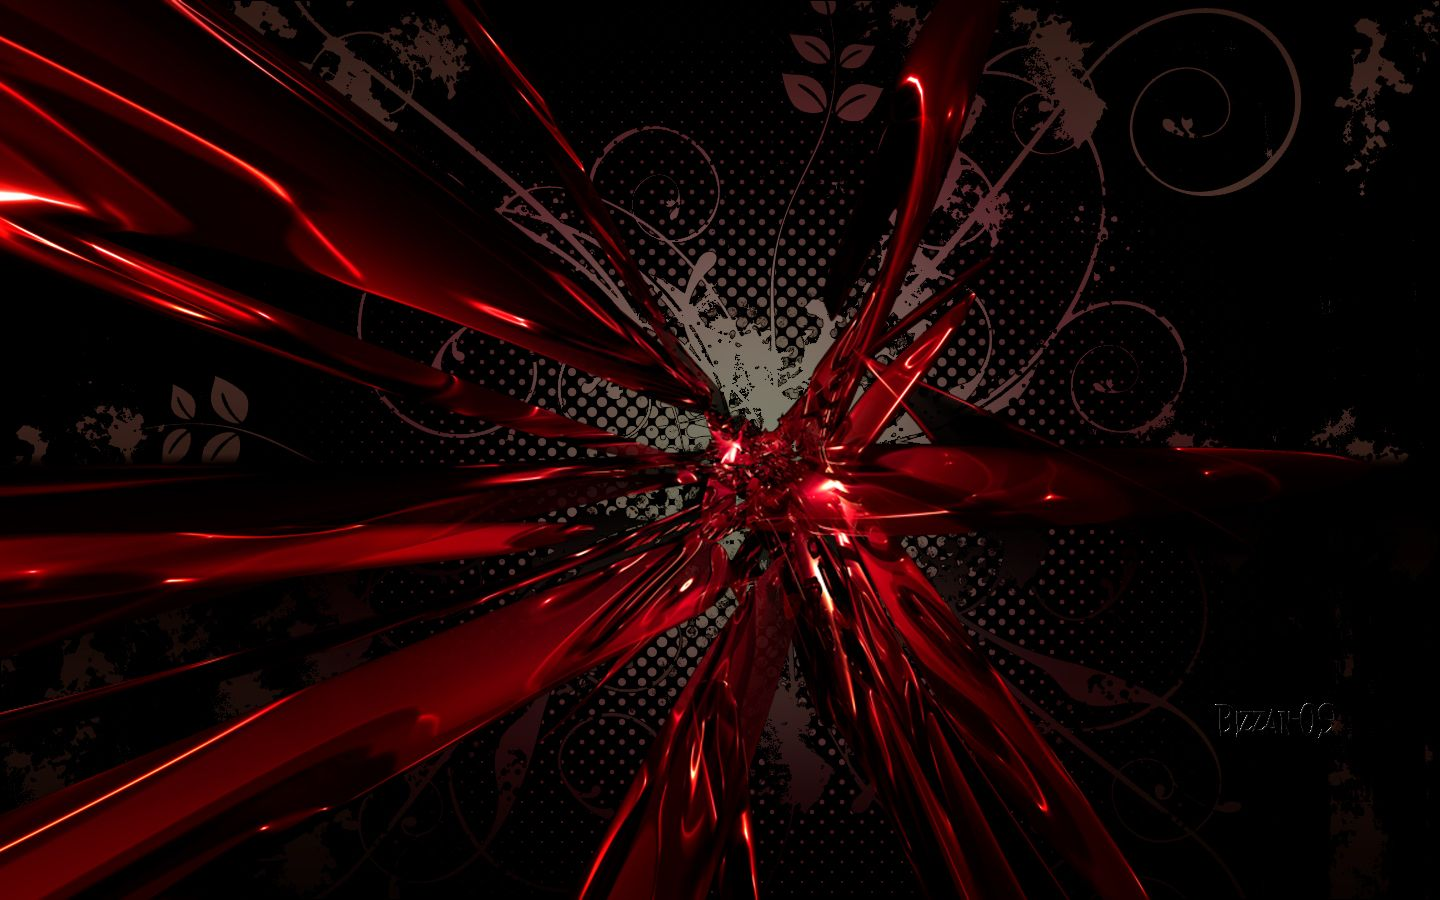 Abstract Hd Wallpapers 1080p 3d - http ...